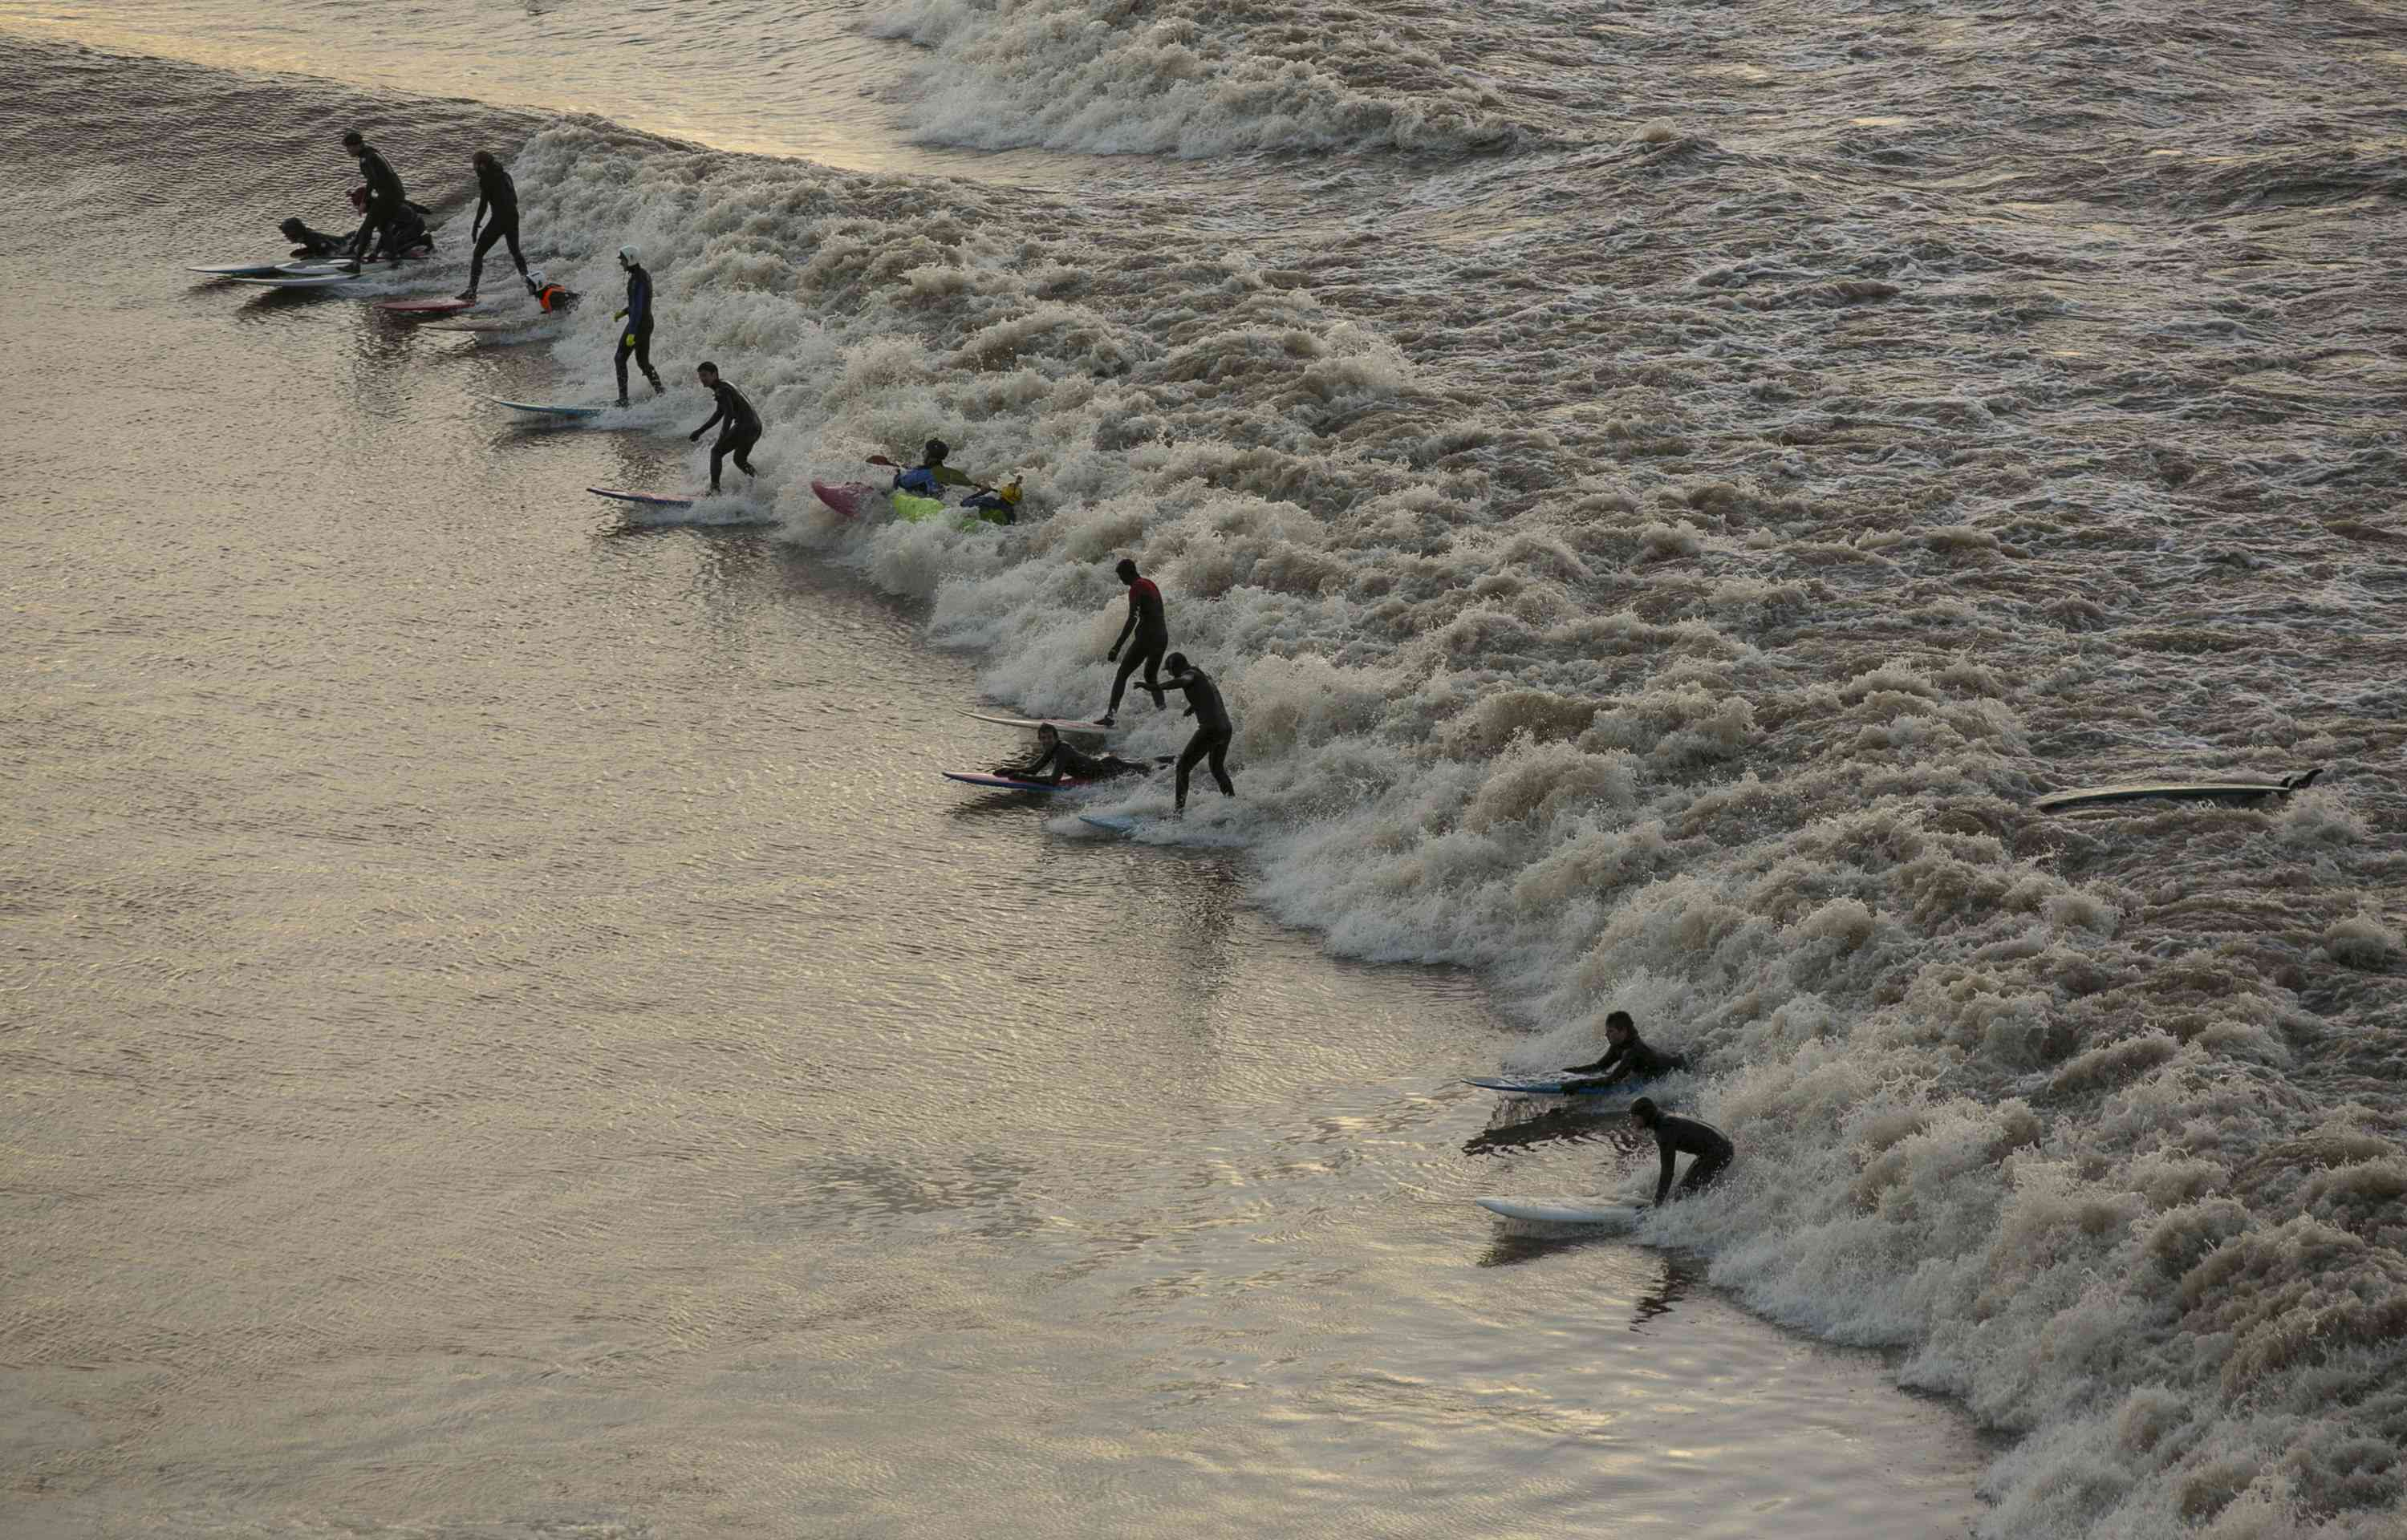 A group of 10 surfers attempt to ride on a rare maximum five star Severn bore viewed from Newnham overlooking the River Severn